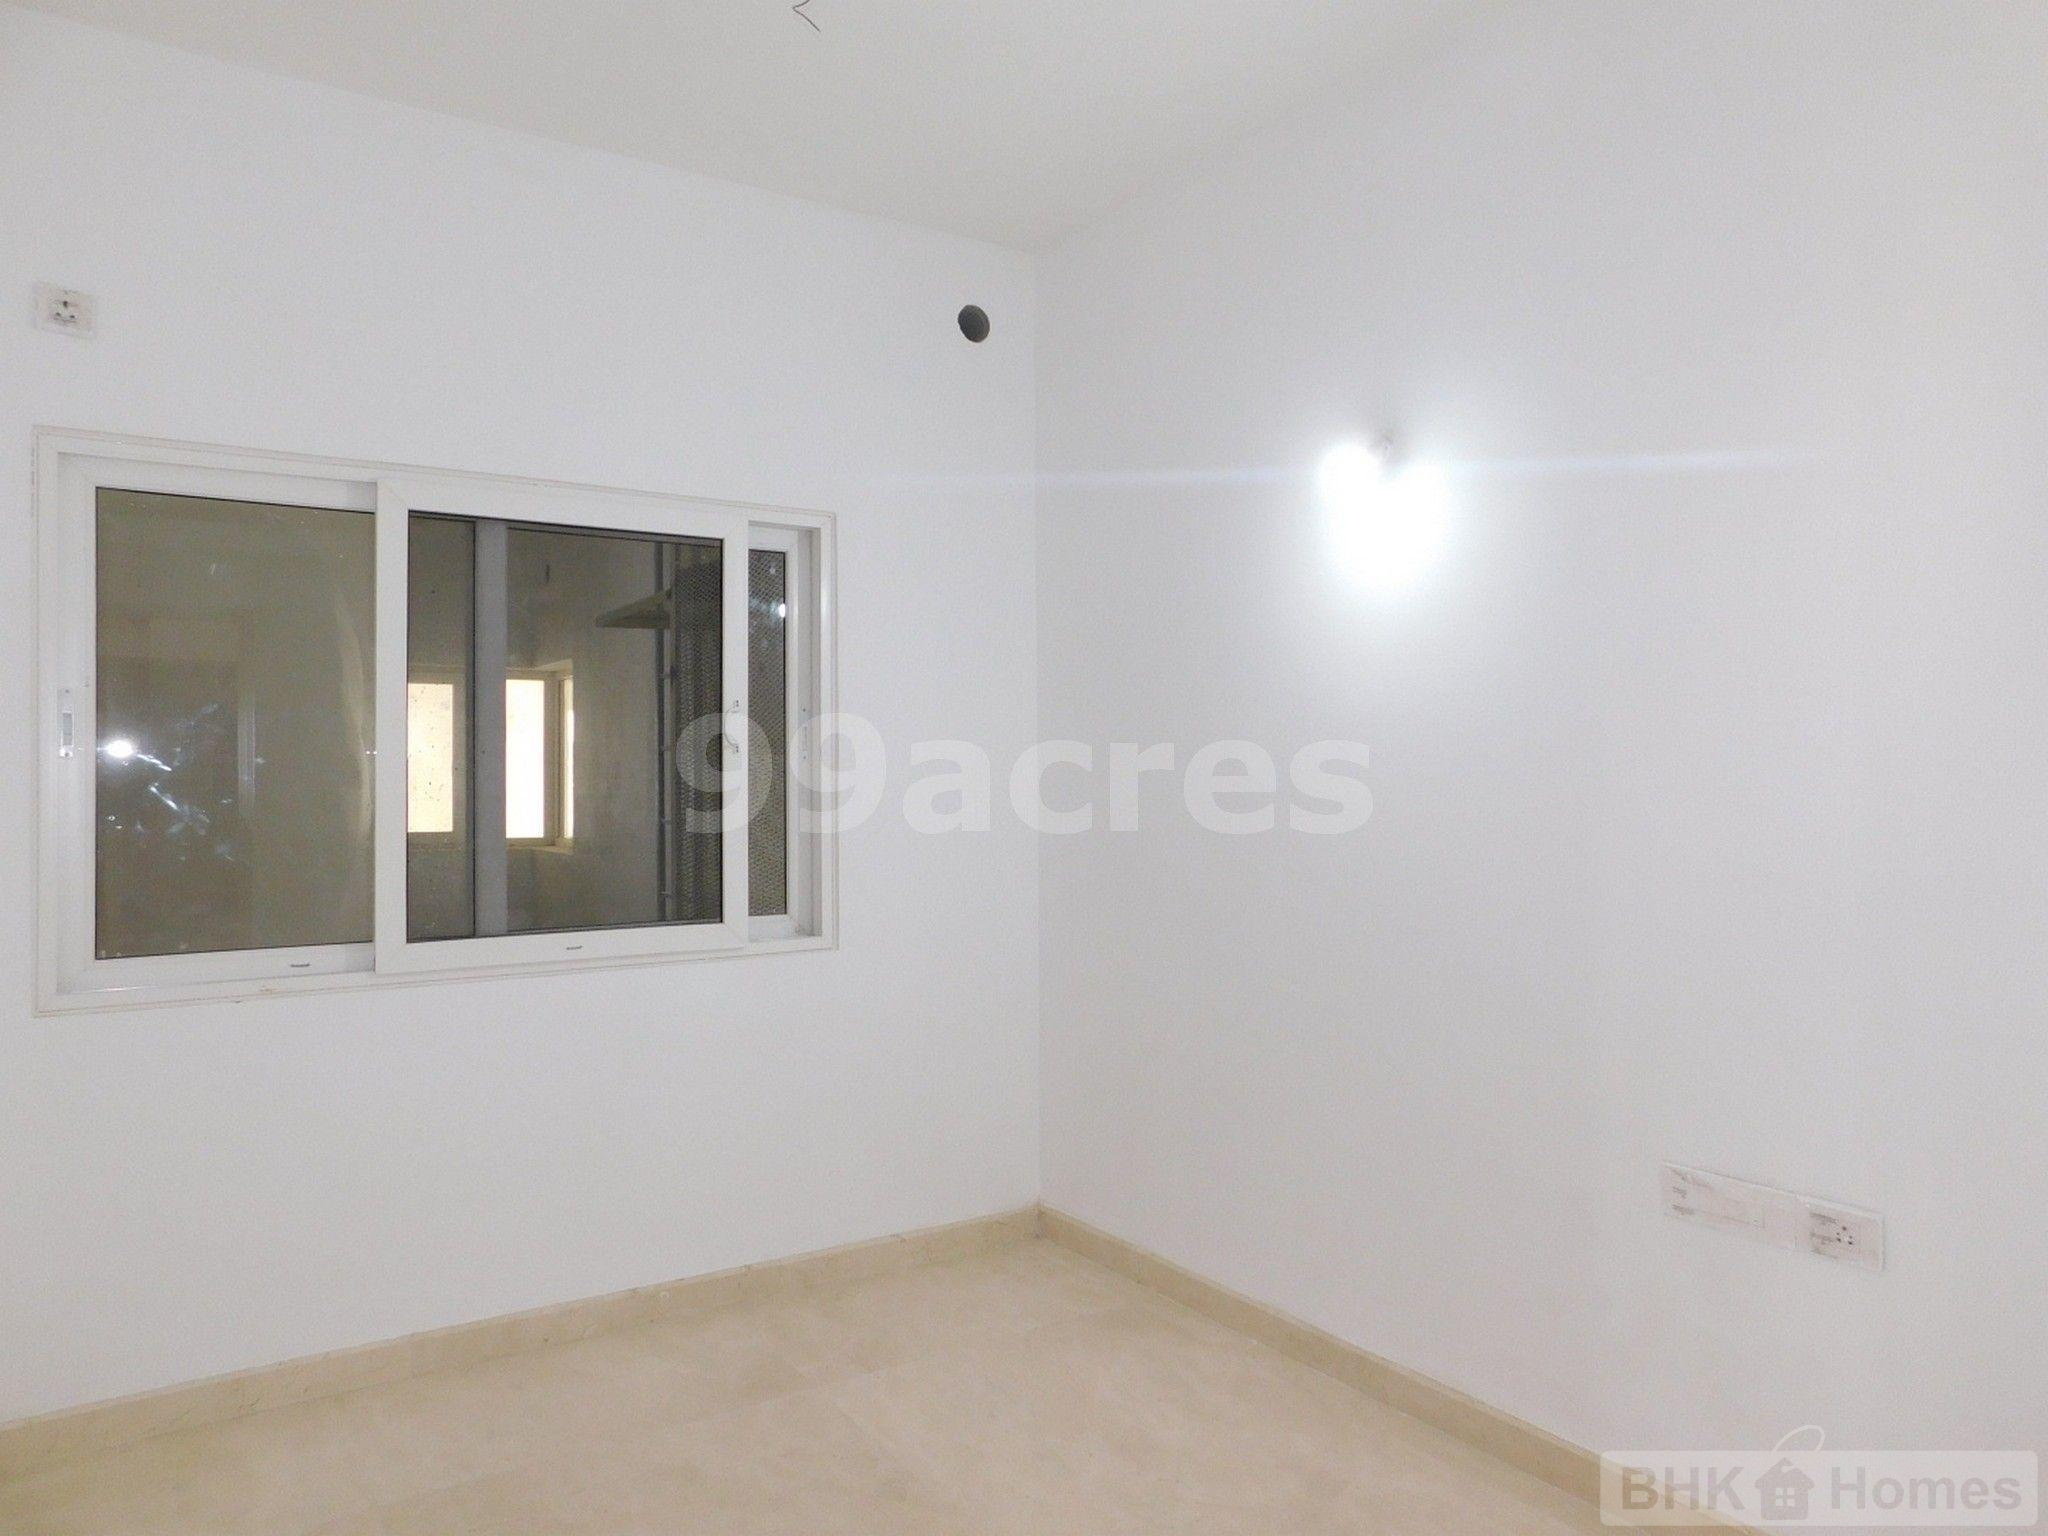 4 BHK  Apartment for Sale in   Basavangudi